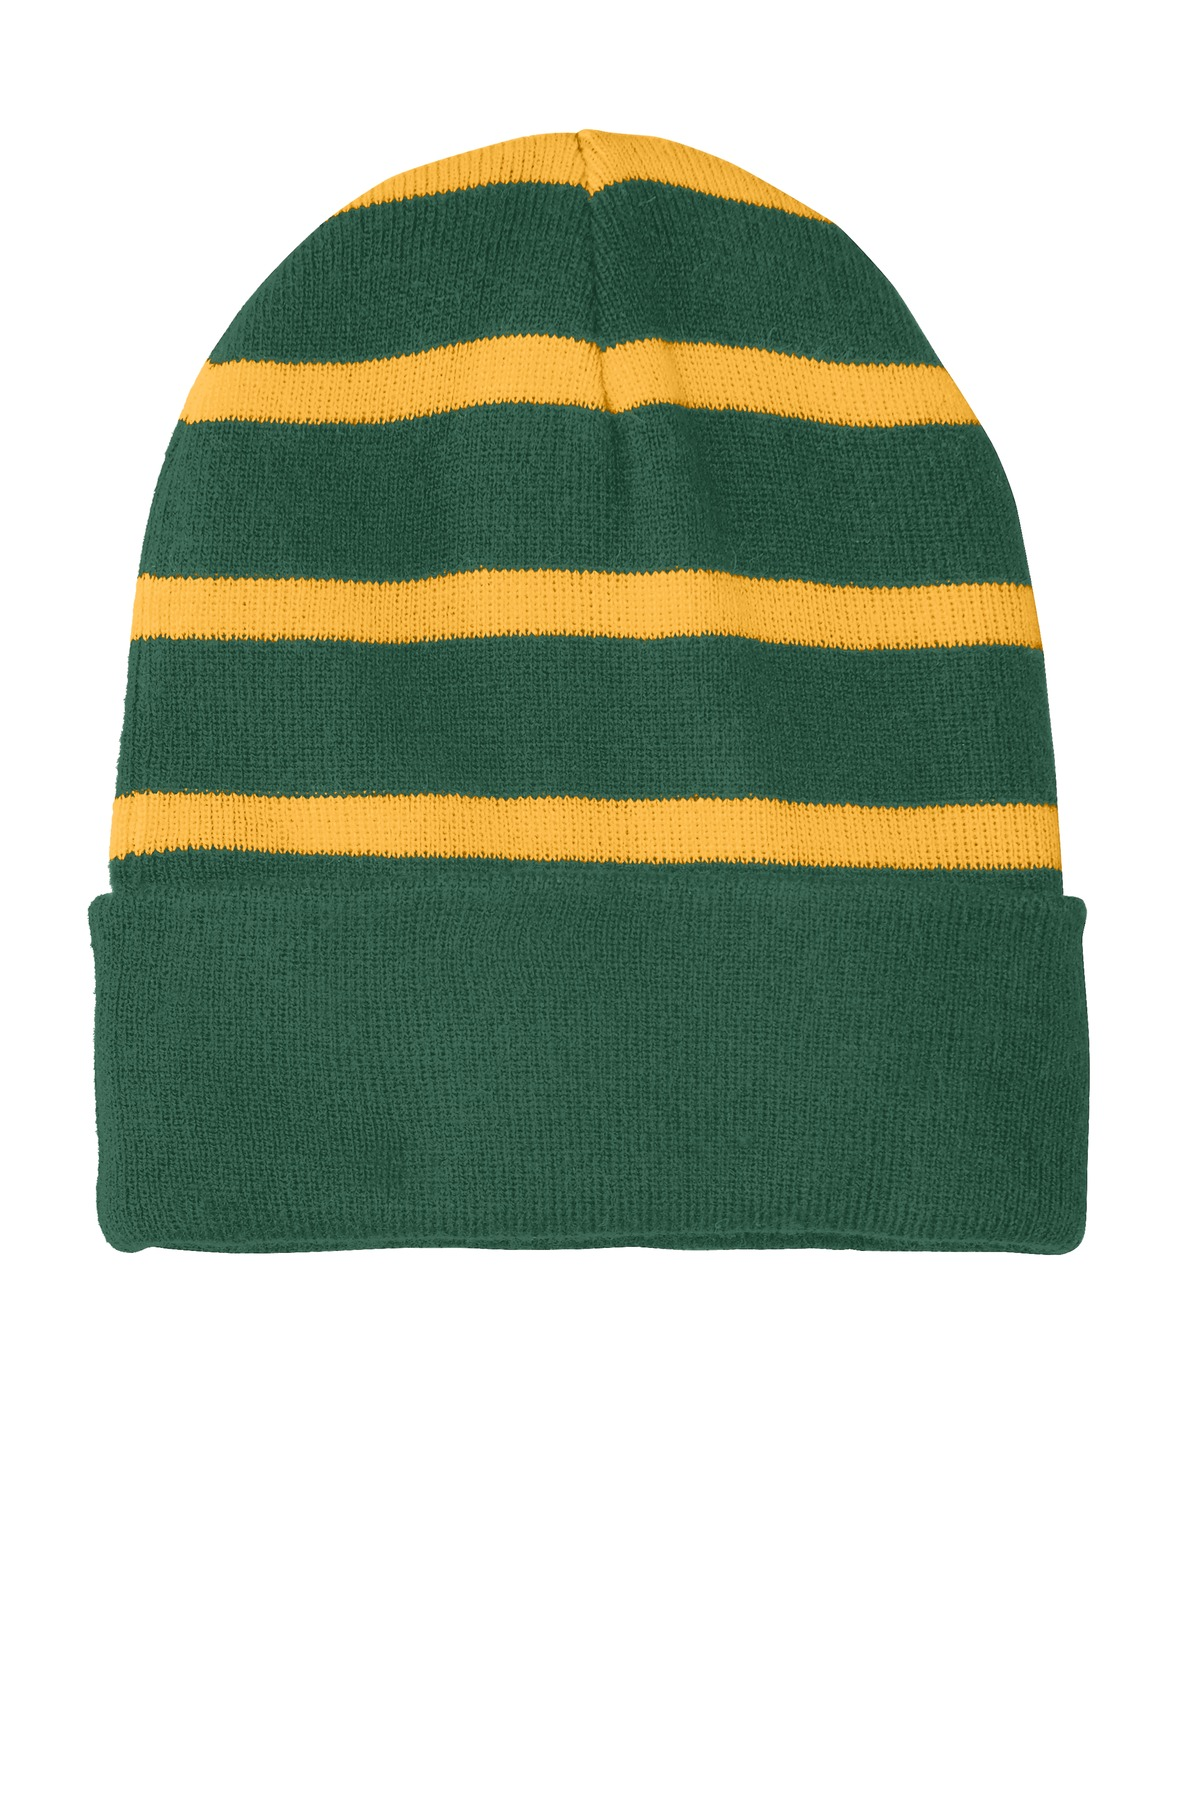 Sport-Tek ®  Striped Beanie with Solid Band. STC31 - Forest Green/ Gold